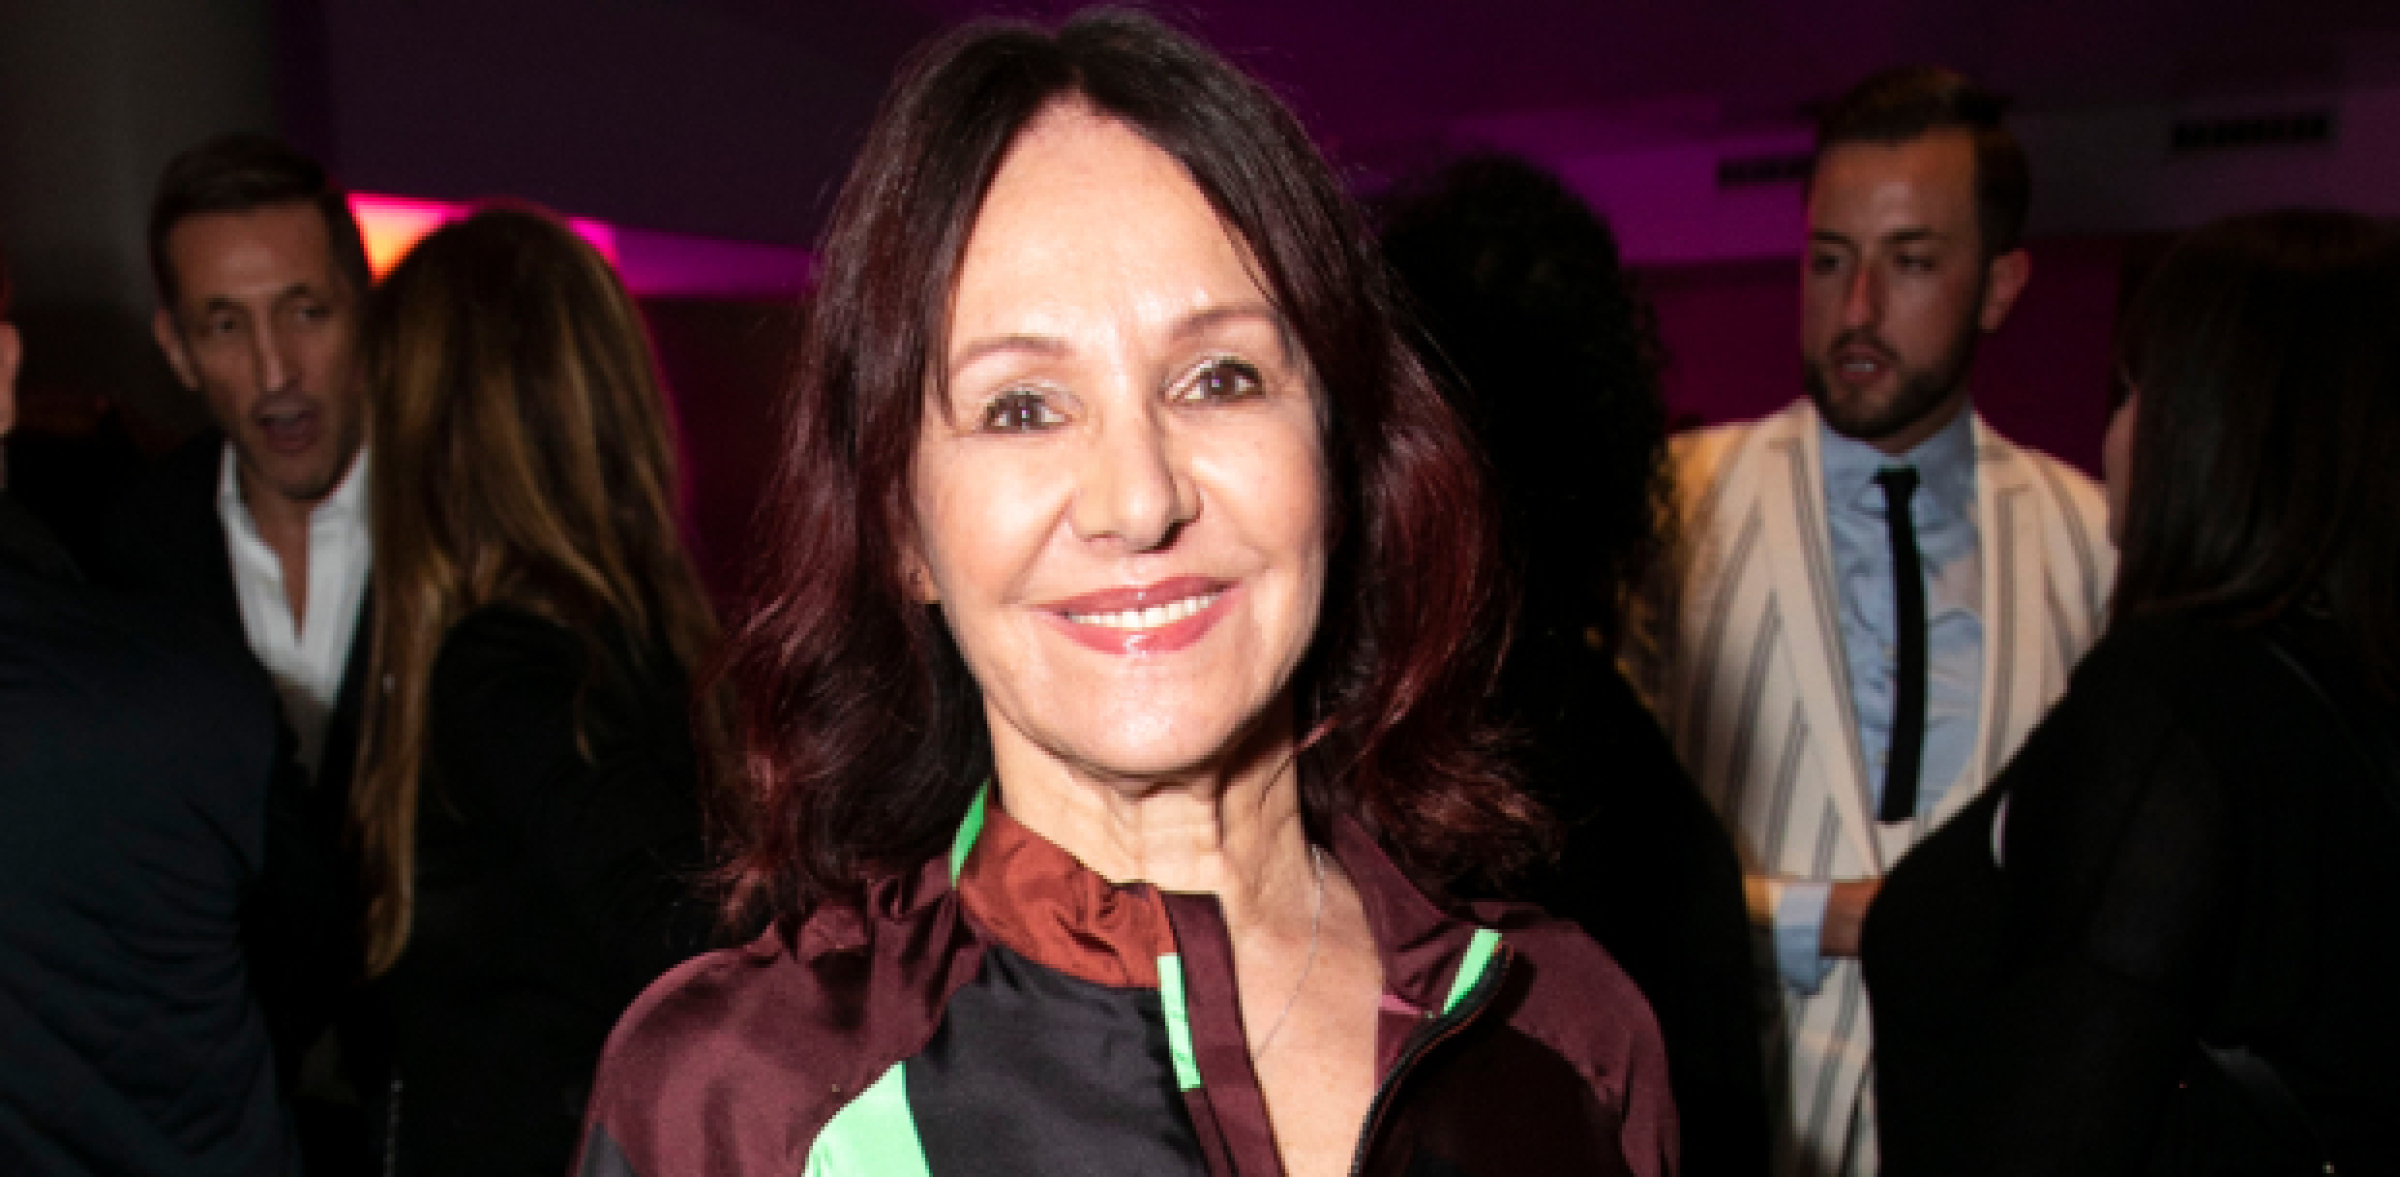 Forum on this topic: Arlene Phillips Says She'll Reveal REAL Reason , arlene-phillips-says-shell-reveal-real-reason/